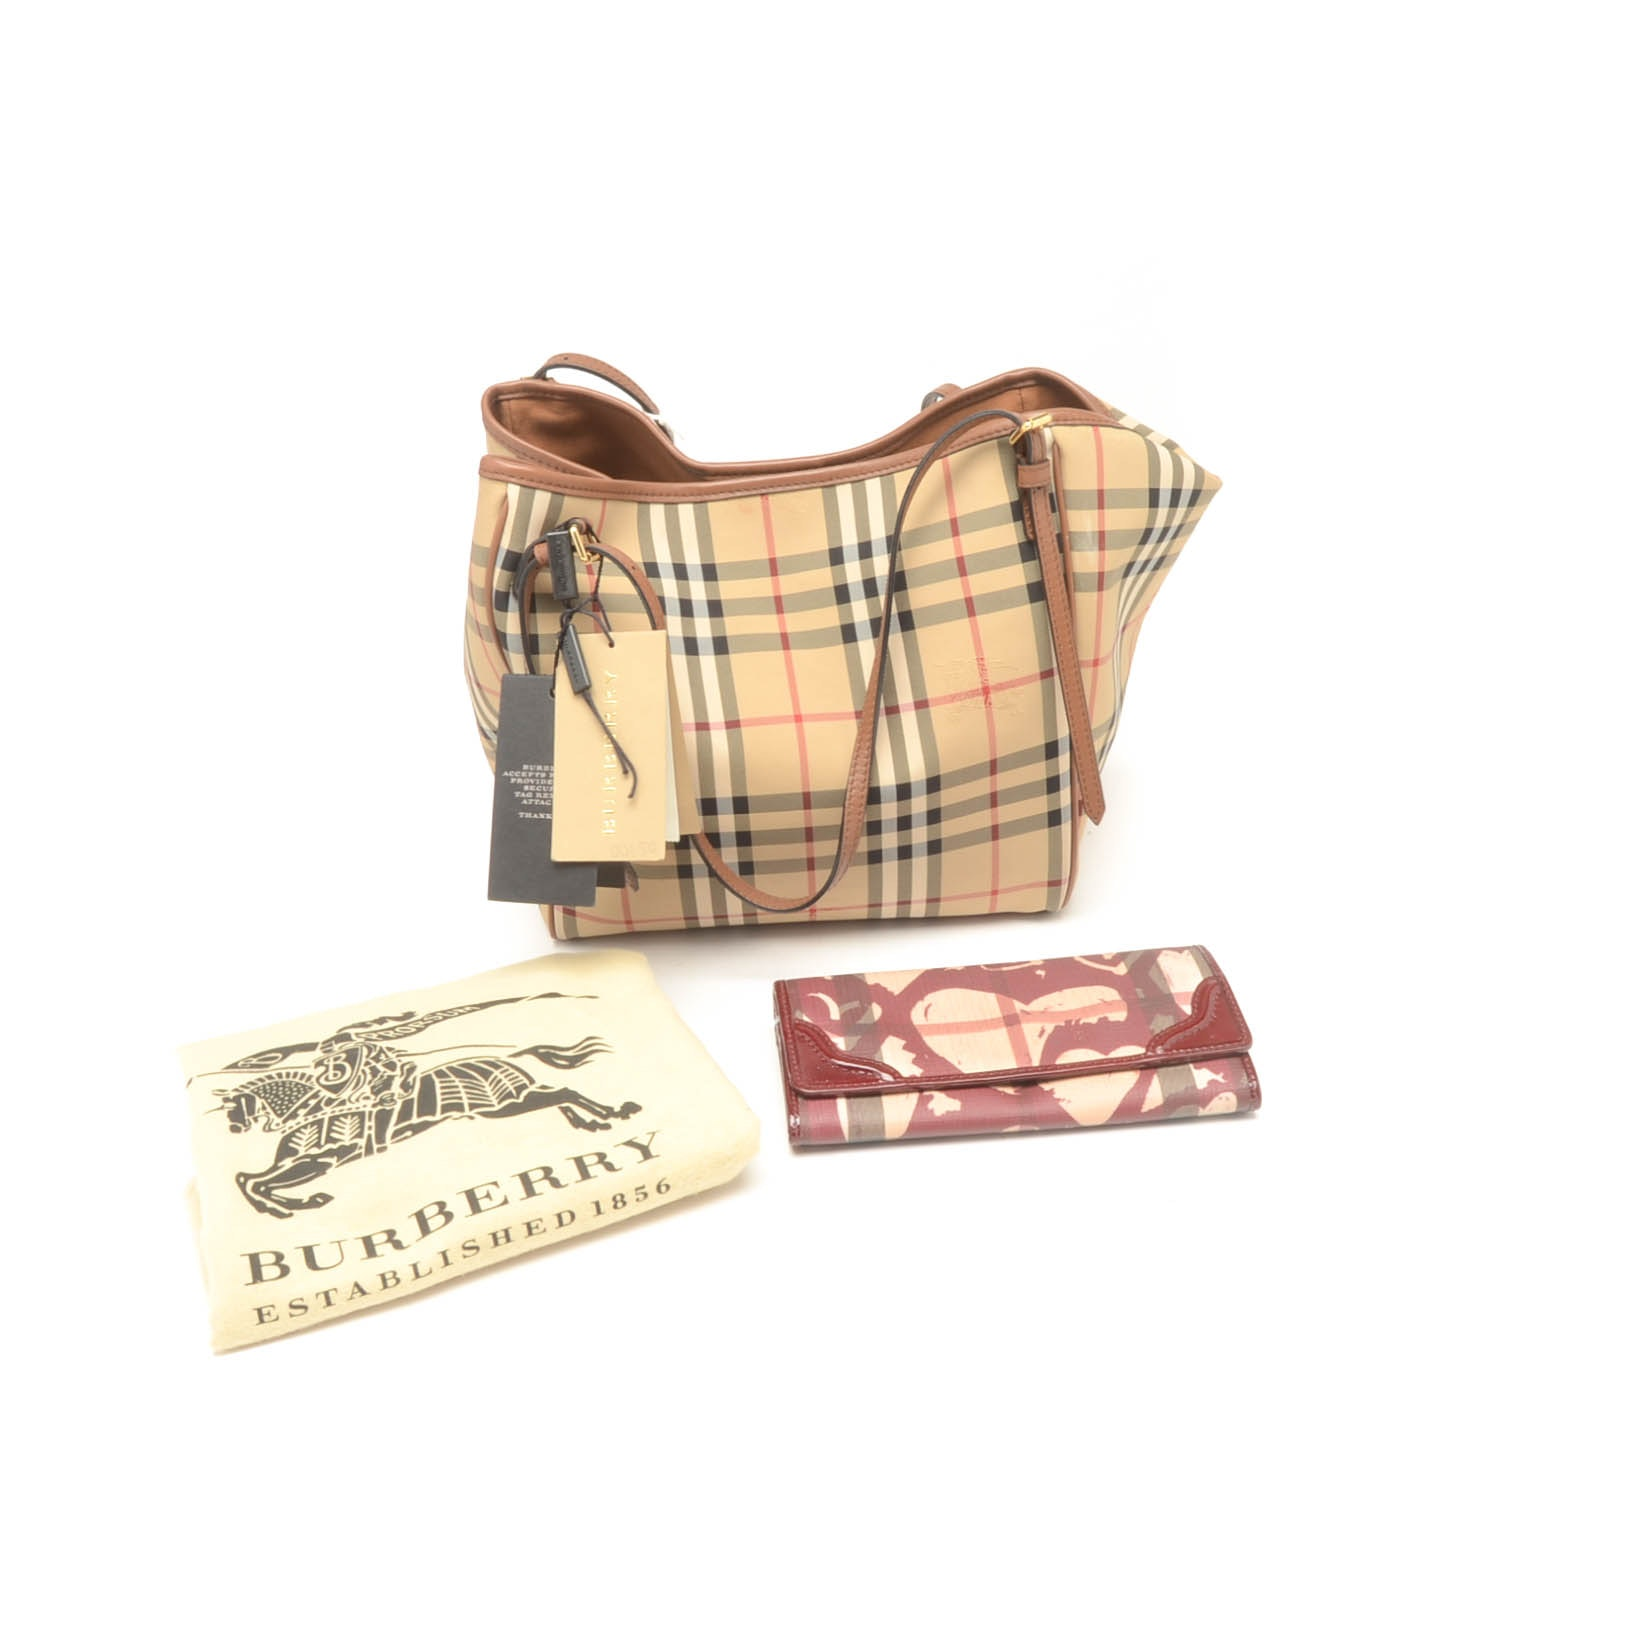 "Burberry ""Canter"" Horseferry Check Handbag and Wallet"